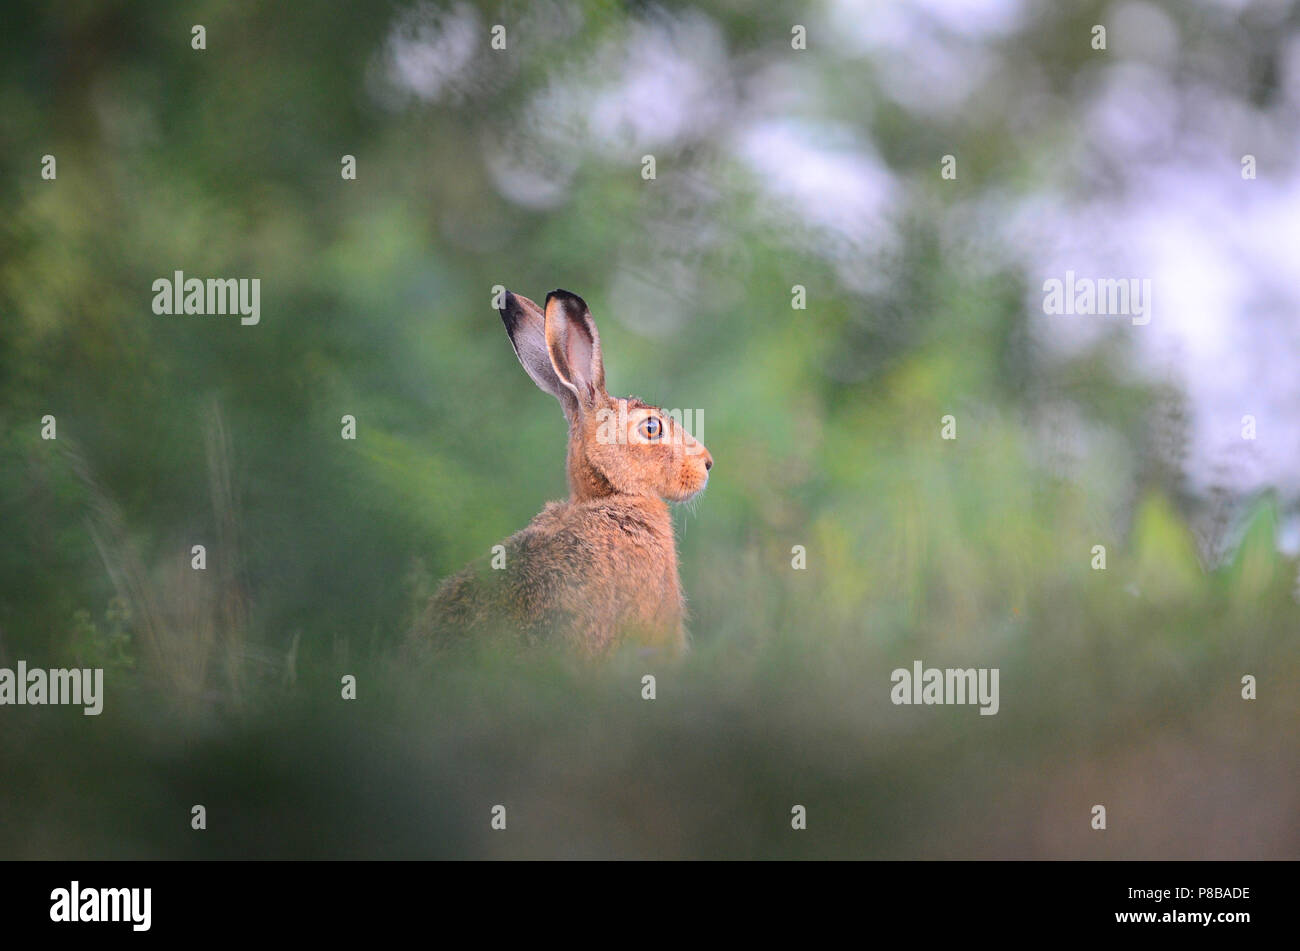 Hare in wilderness, easter holiday bunny rabbit jack rabbit - Stock Image